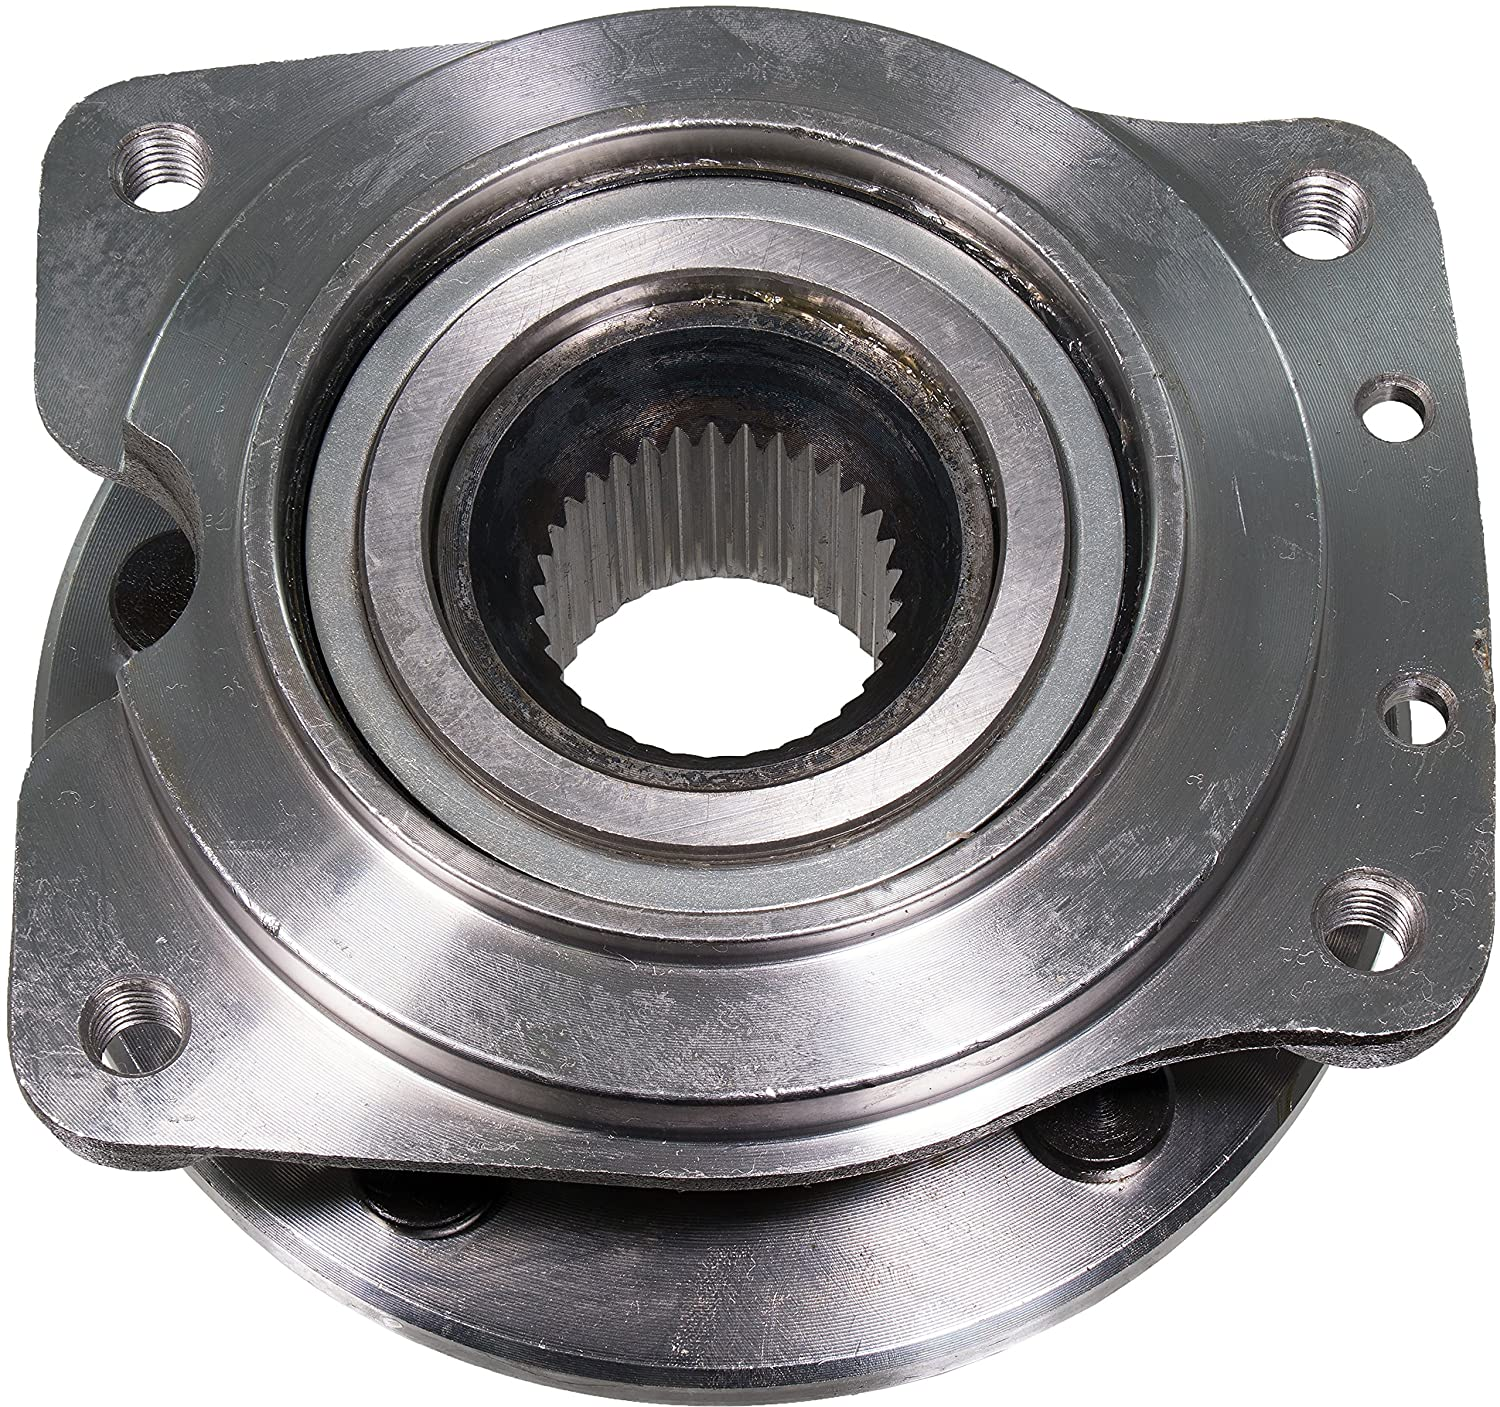 APDTY 513044 Wheel Bearing & Hub Assembly Fits Front left Or Right Fits 1988-1996 Regal Or Grand Prix, 1988-1997 Cutlass Supreme, 1990-2001 Lumina, 1995-1999 Monte Carlo (Replaces 7470625)